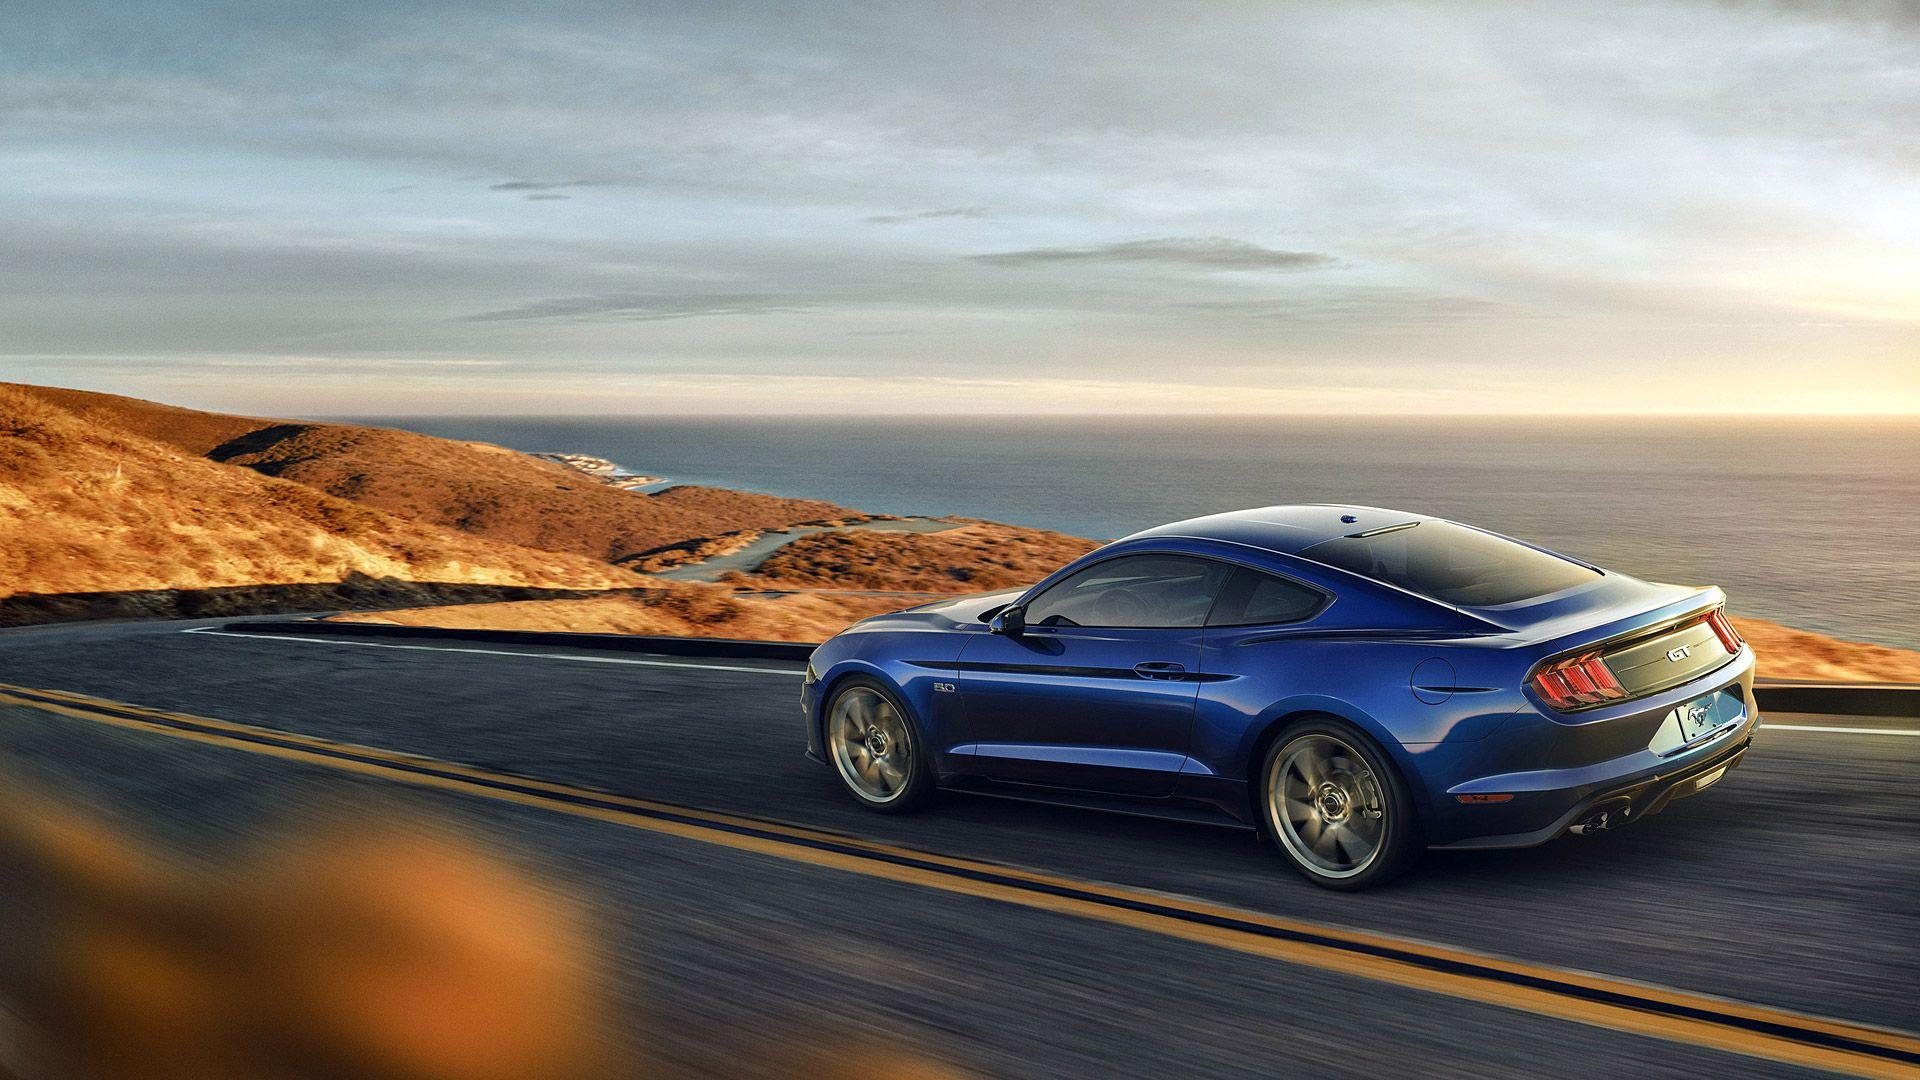 2018 Ford Mustang GT Wallpapers & HD Image